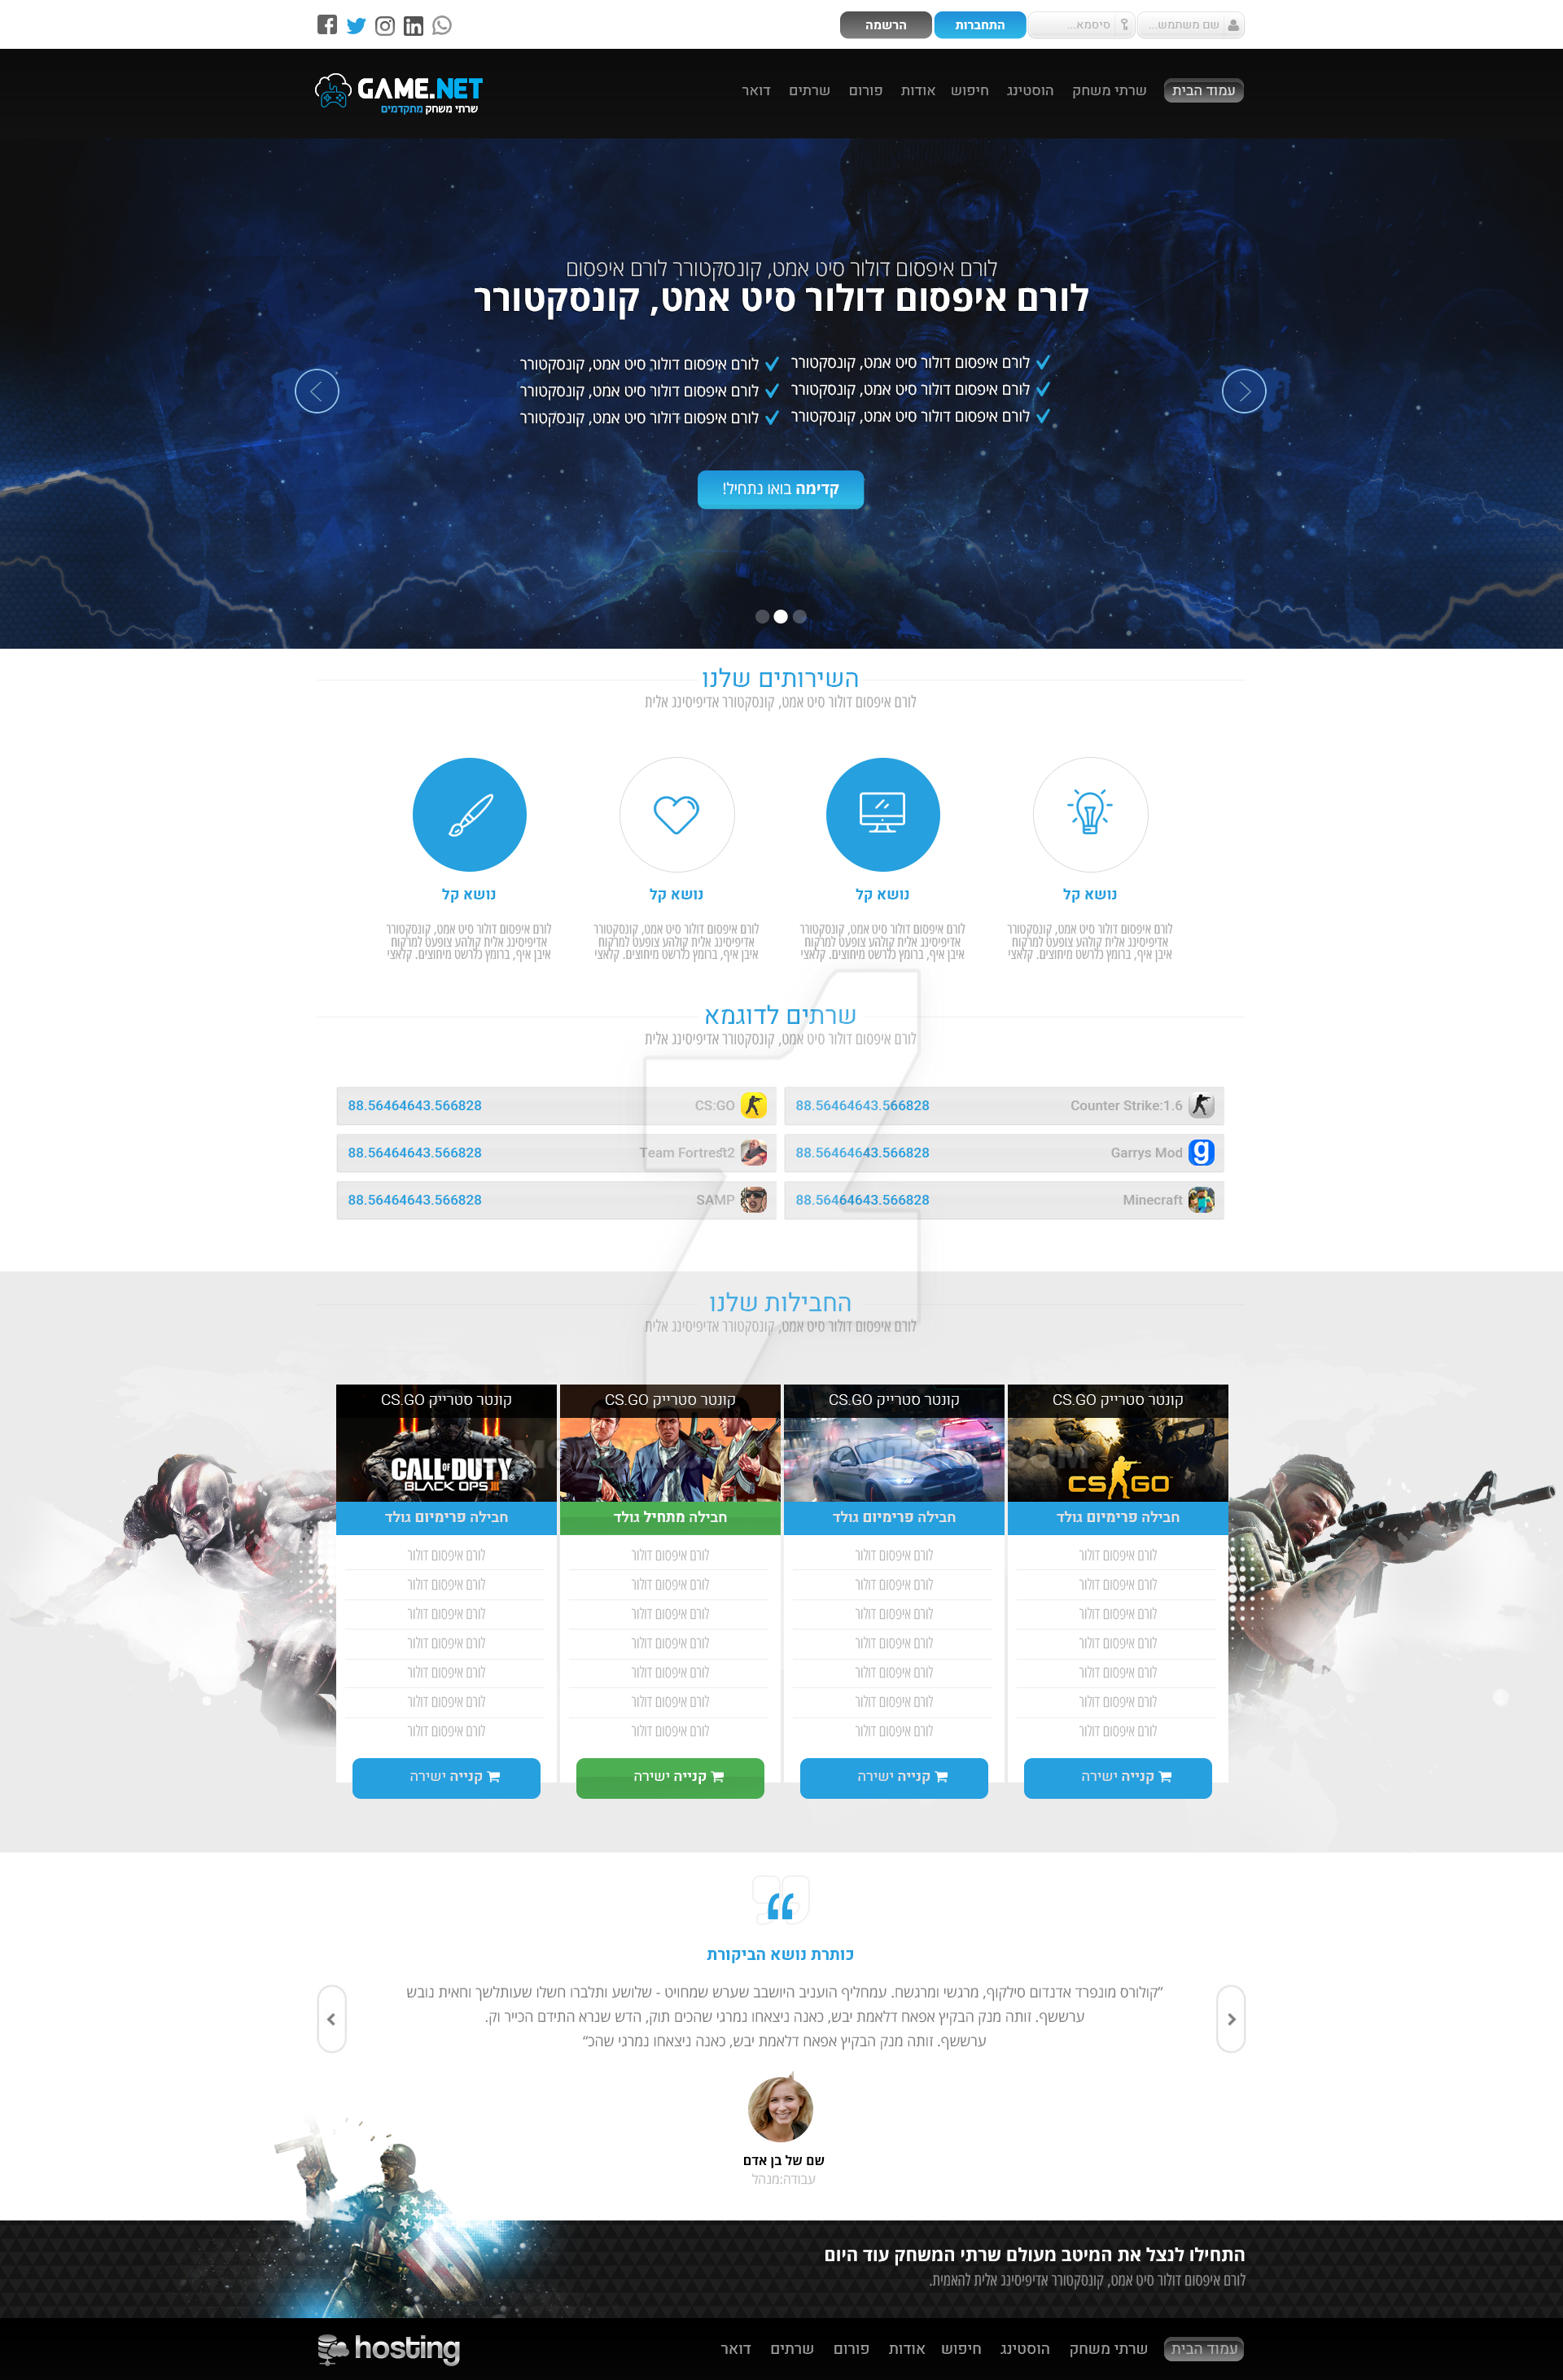 Website Design - Hosting games - GameNet - SOLD by MorBarda